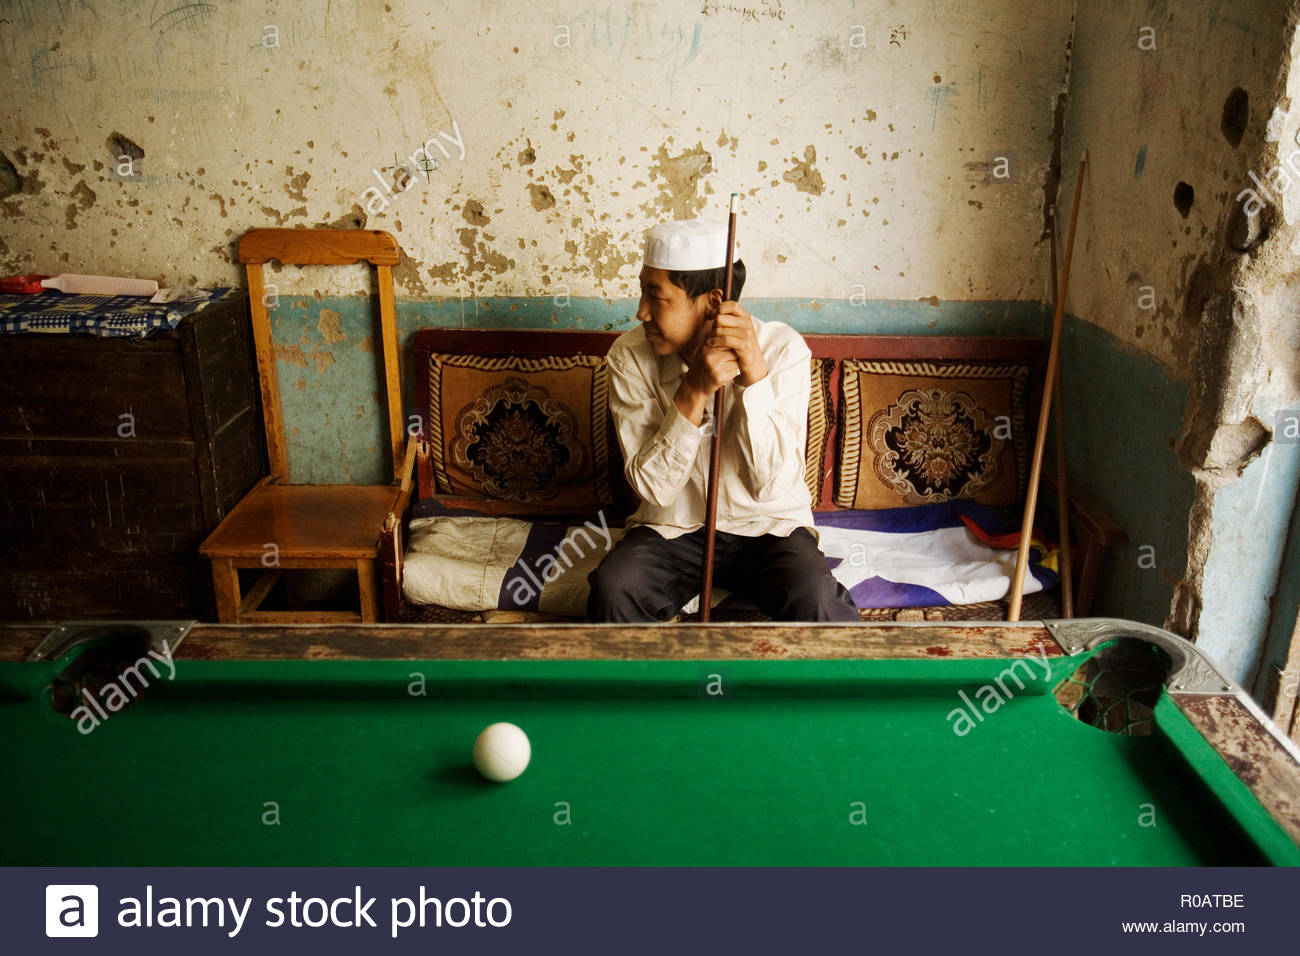 A young muslim boy at a pool hall - Stock Image